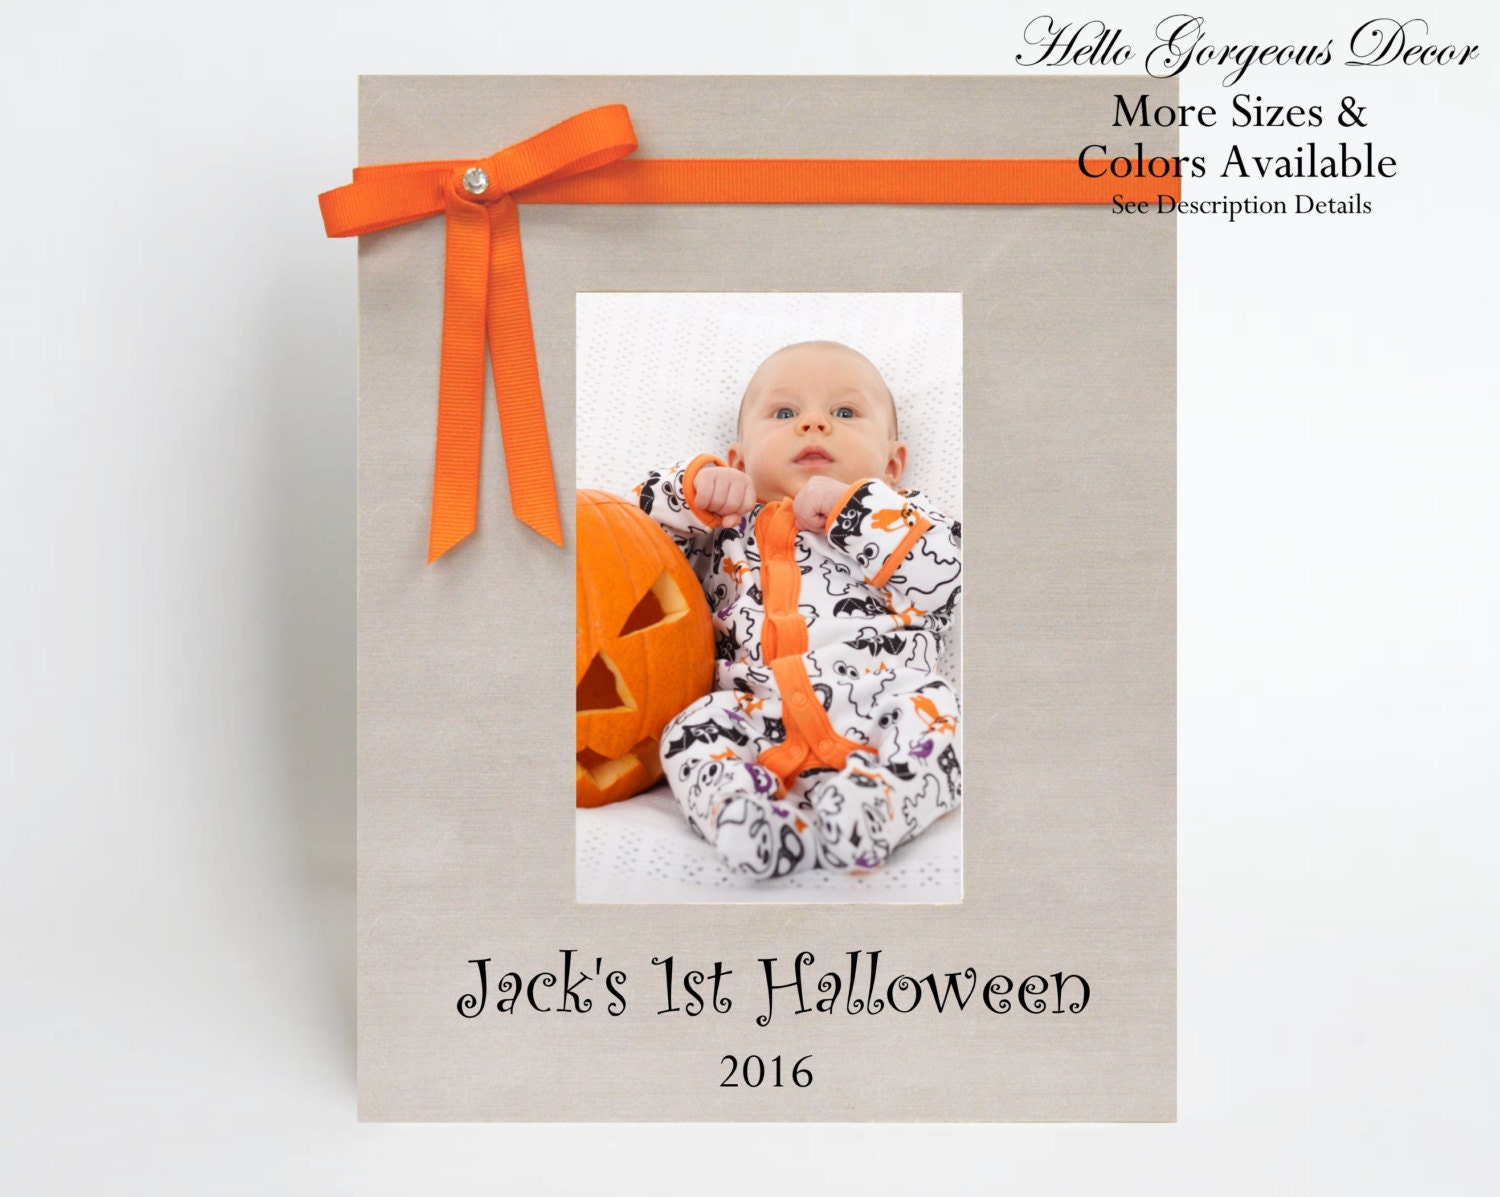 zoom - Personalized Halloween Decorations